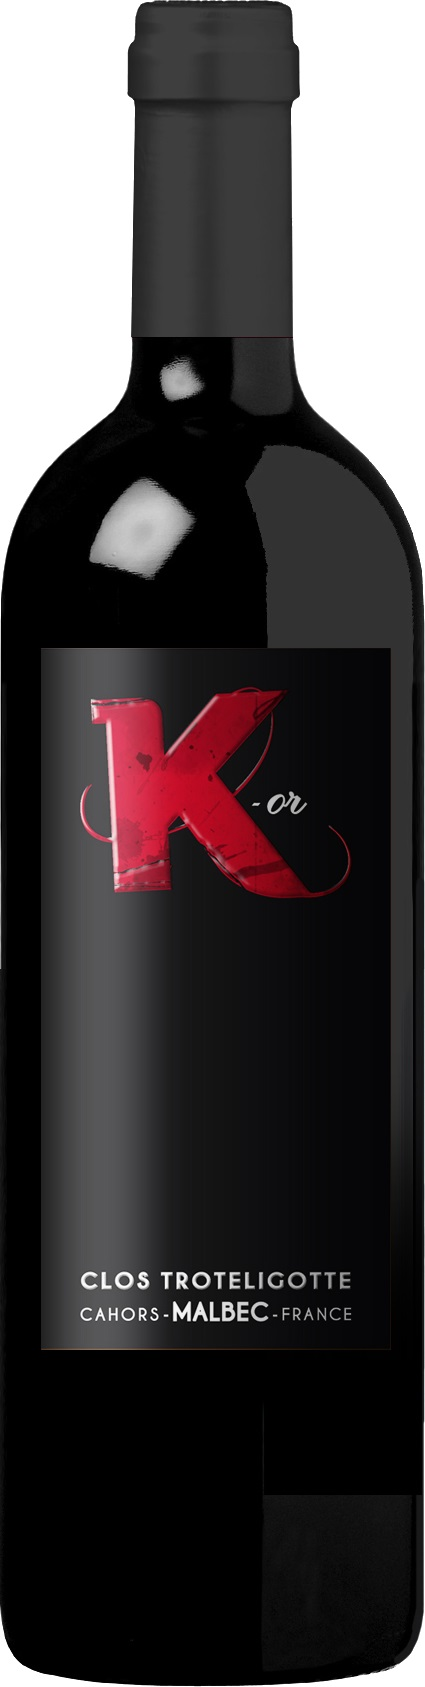 Caudalia Wine Box Abril 2016 Malbec K Or